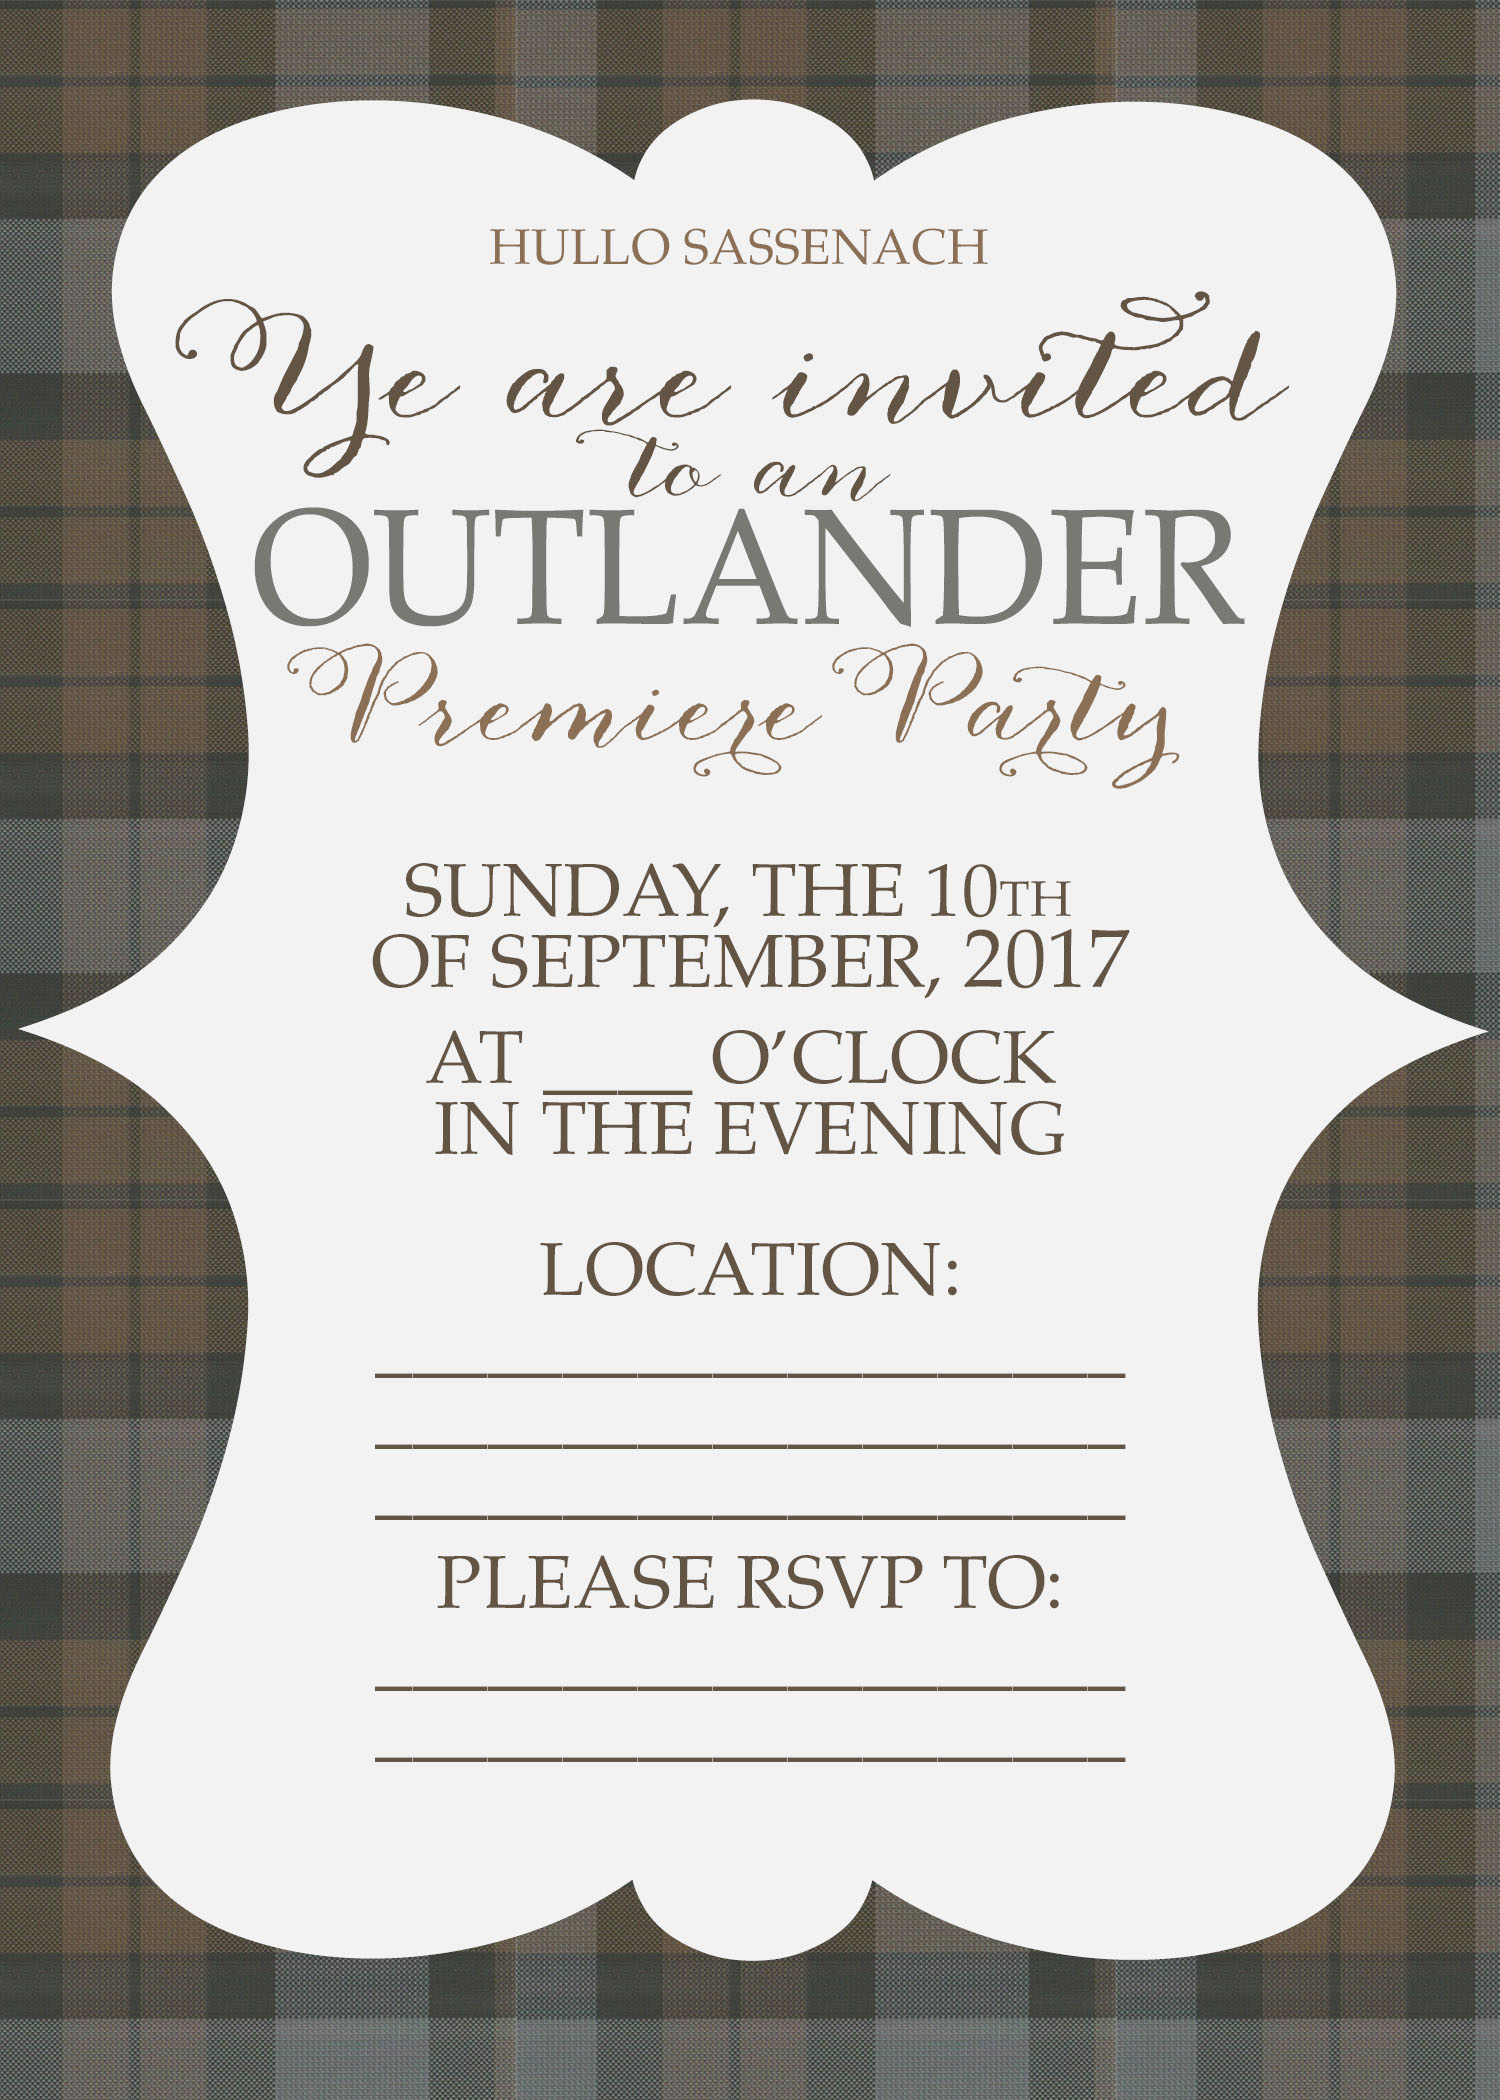 Free outlander premiere party invitations and printables unskinny i stopboris Images